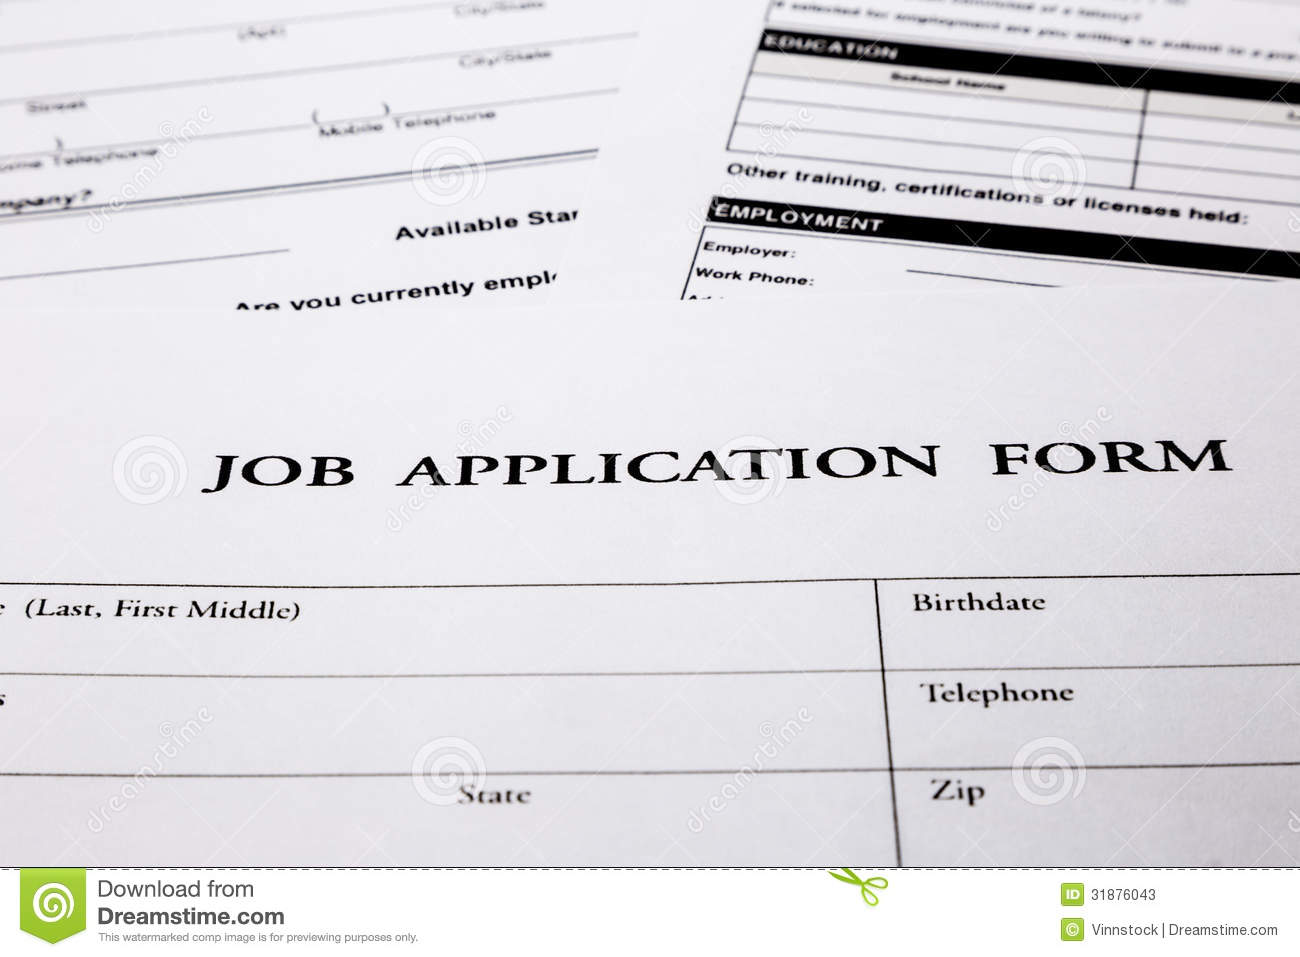 job-application-form-employment-human-resources-business-concepts ...